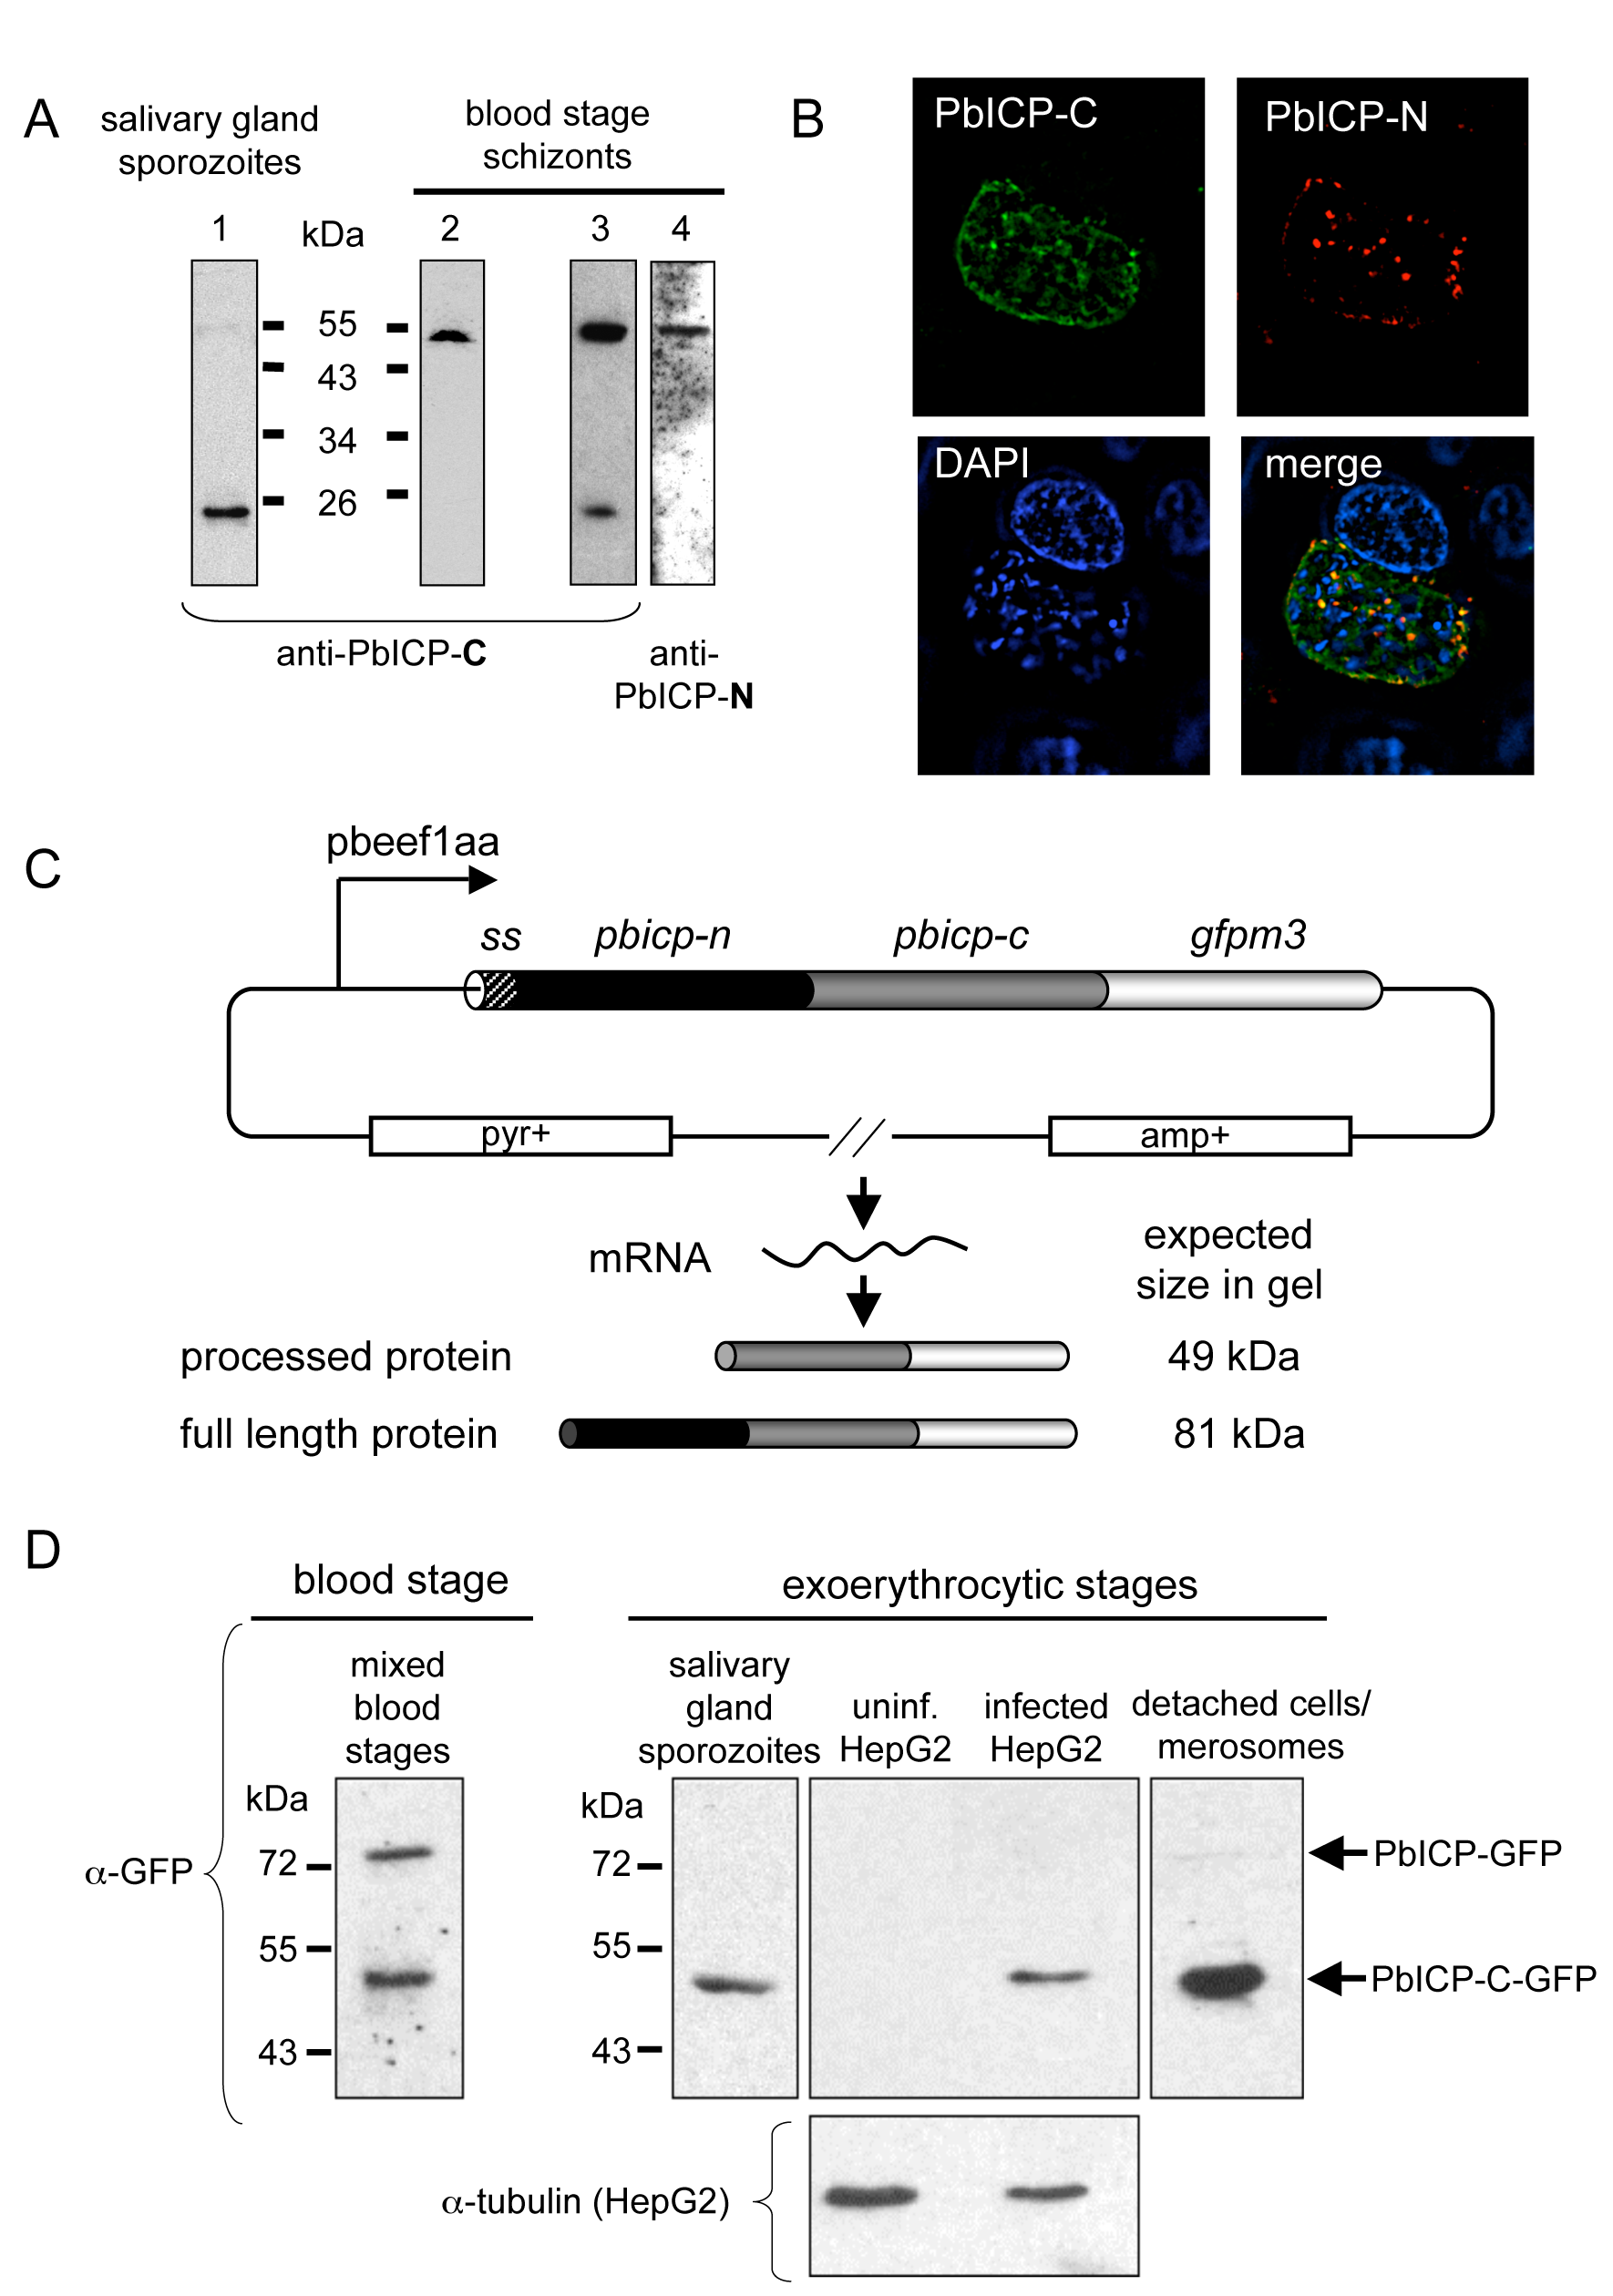 PbICP is posttranslationally processed in the blood stage and exoerythrocytic stages.